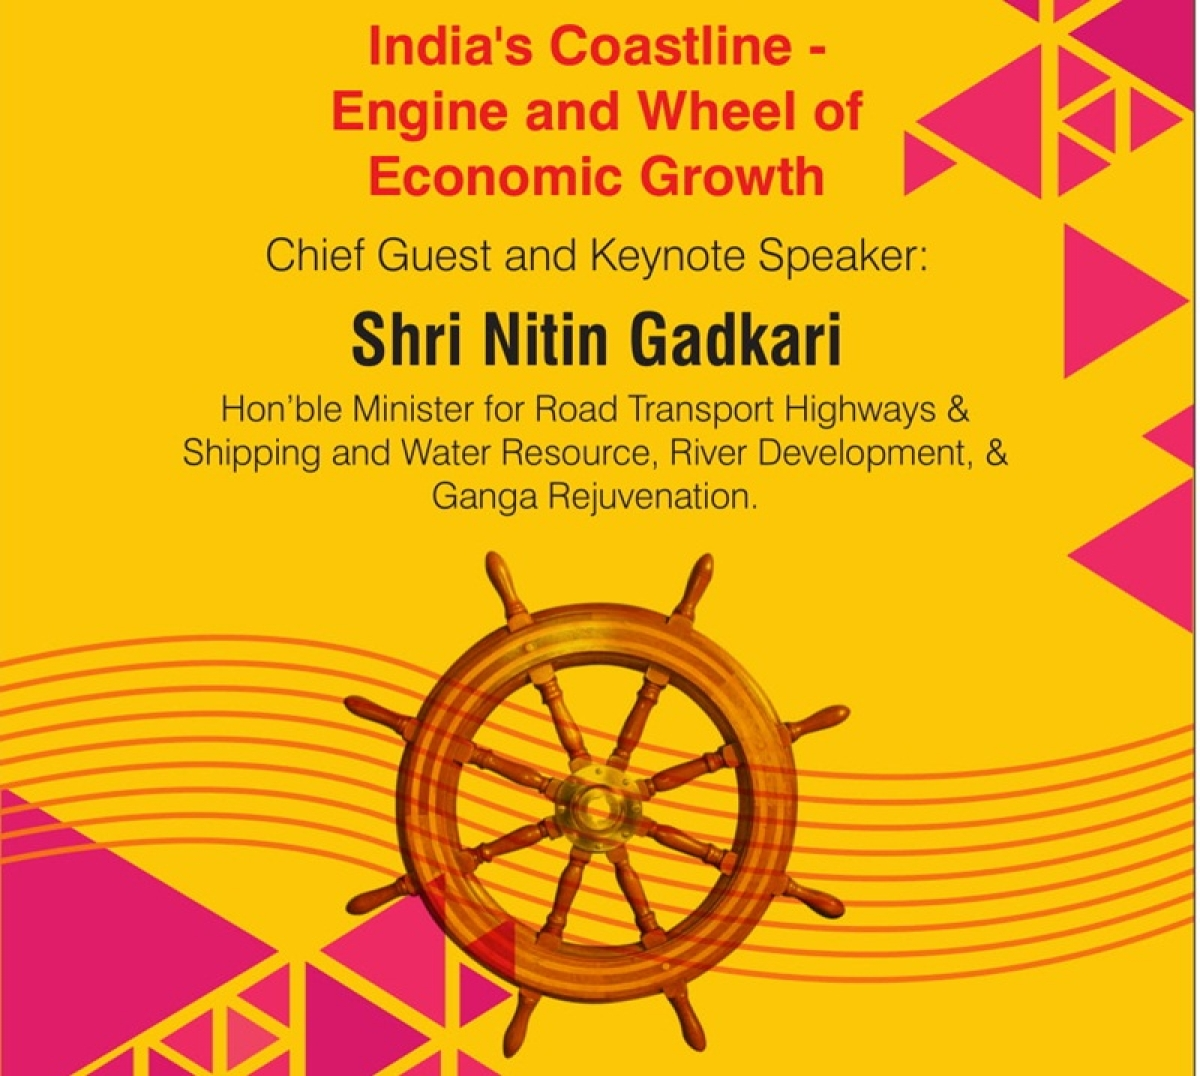 FPJ Event! India's Coastline — Engine and Wheel of Economic Growth; all you need to know about the speakers